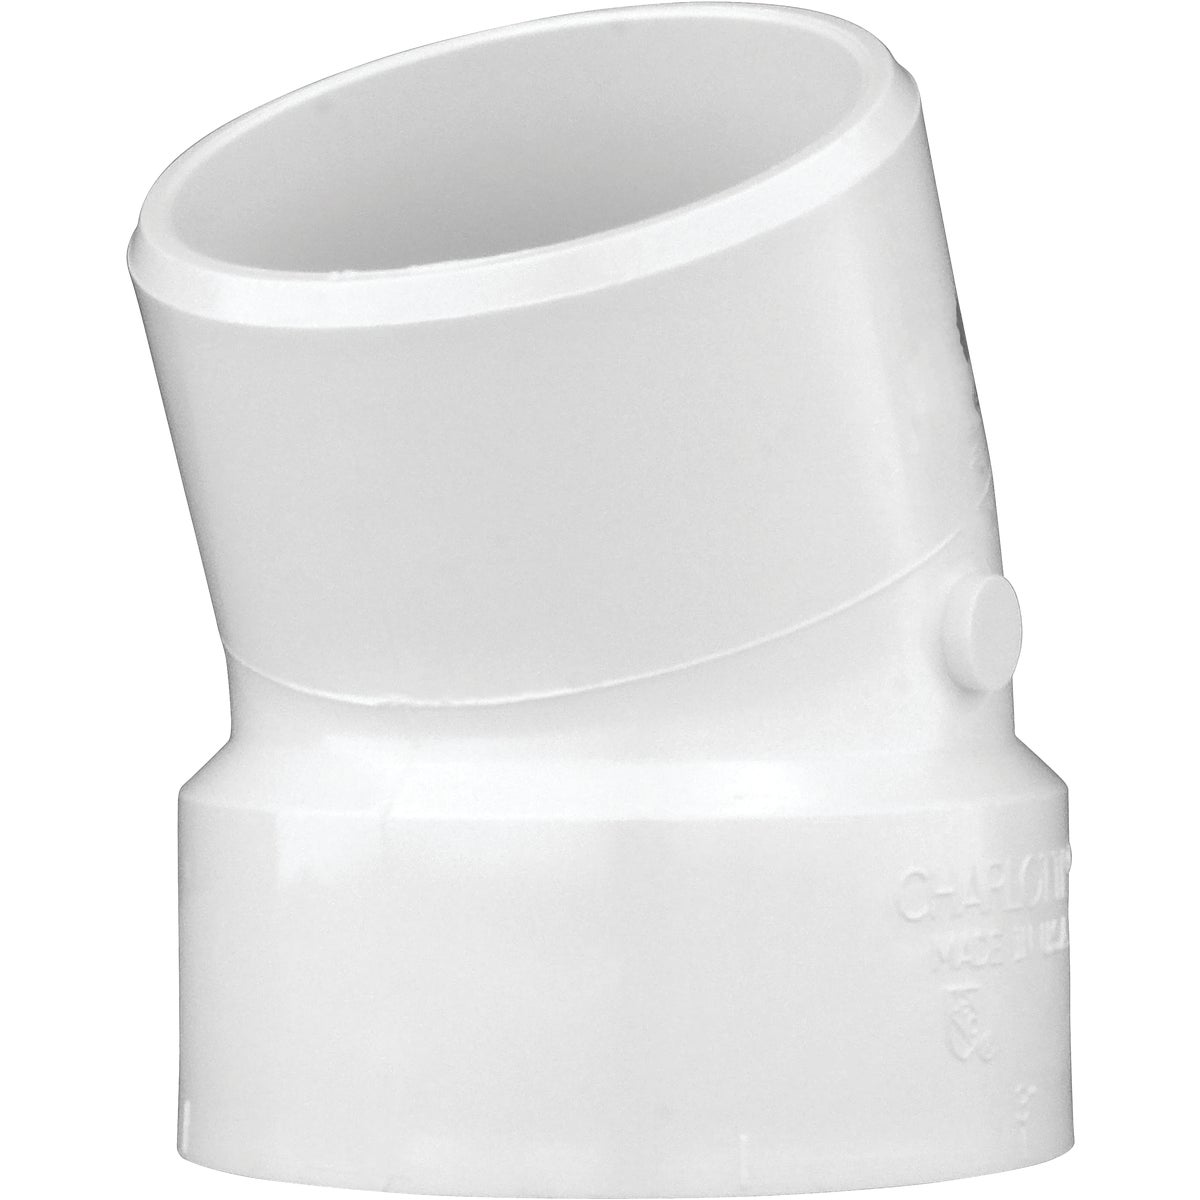 "3"" 22-1/2D STREET ELBOW - 75830 by Genova Inc  Pvc Dwv"